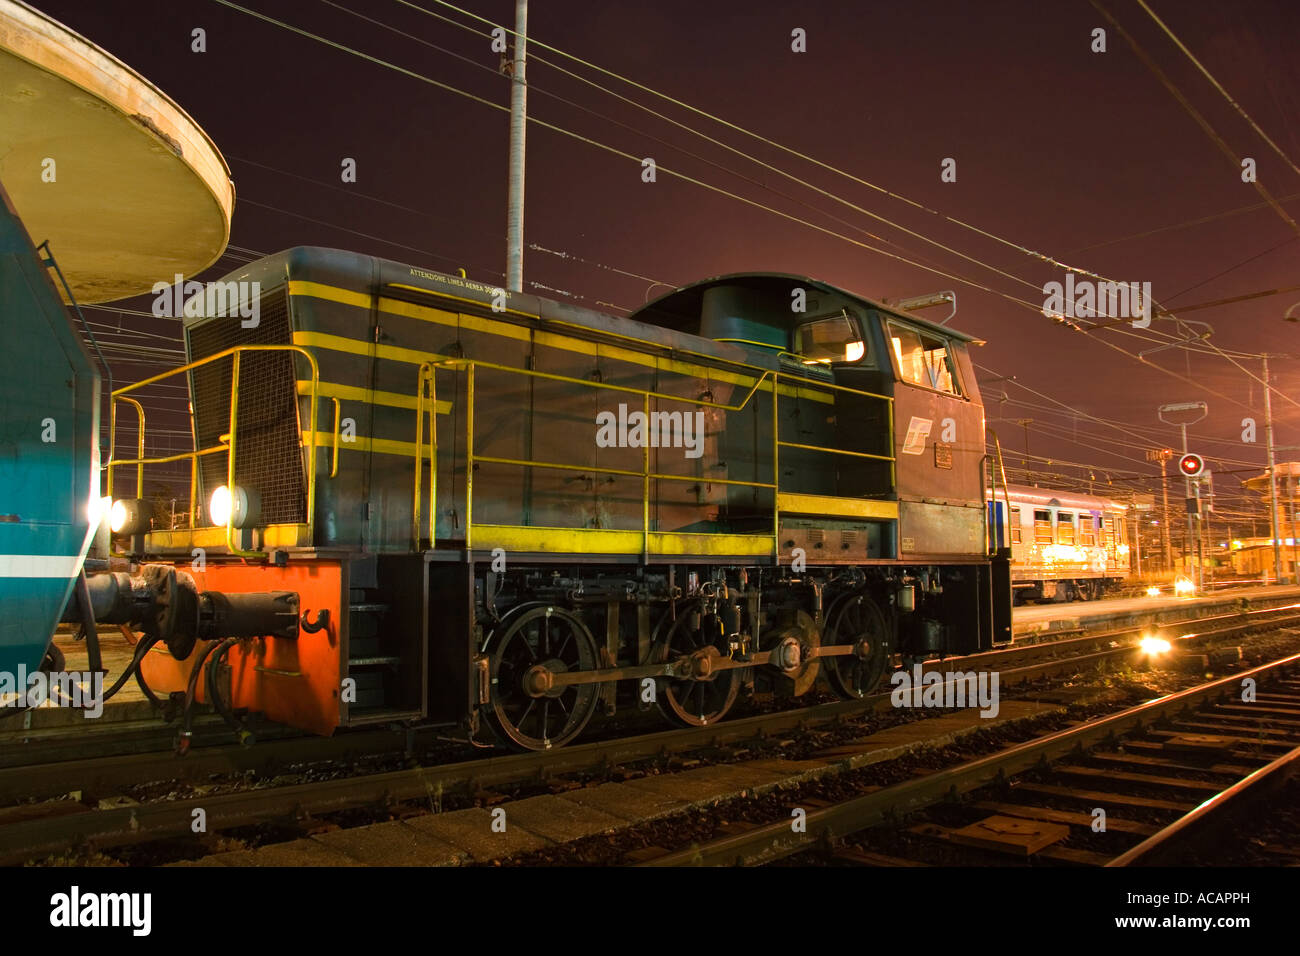 Diesel locomotive shunting at the station of Pisa, evenings, Pisa, Tuscany, Italy - Stock Image